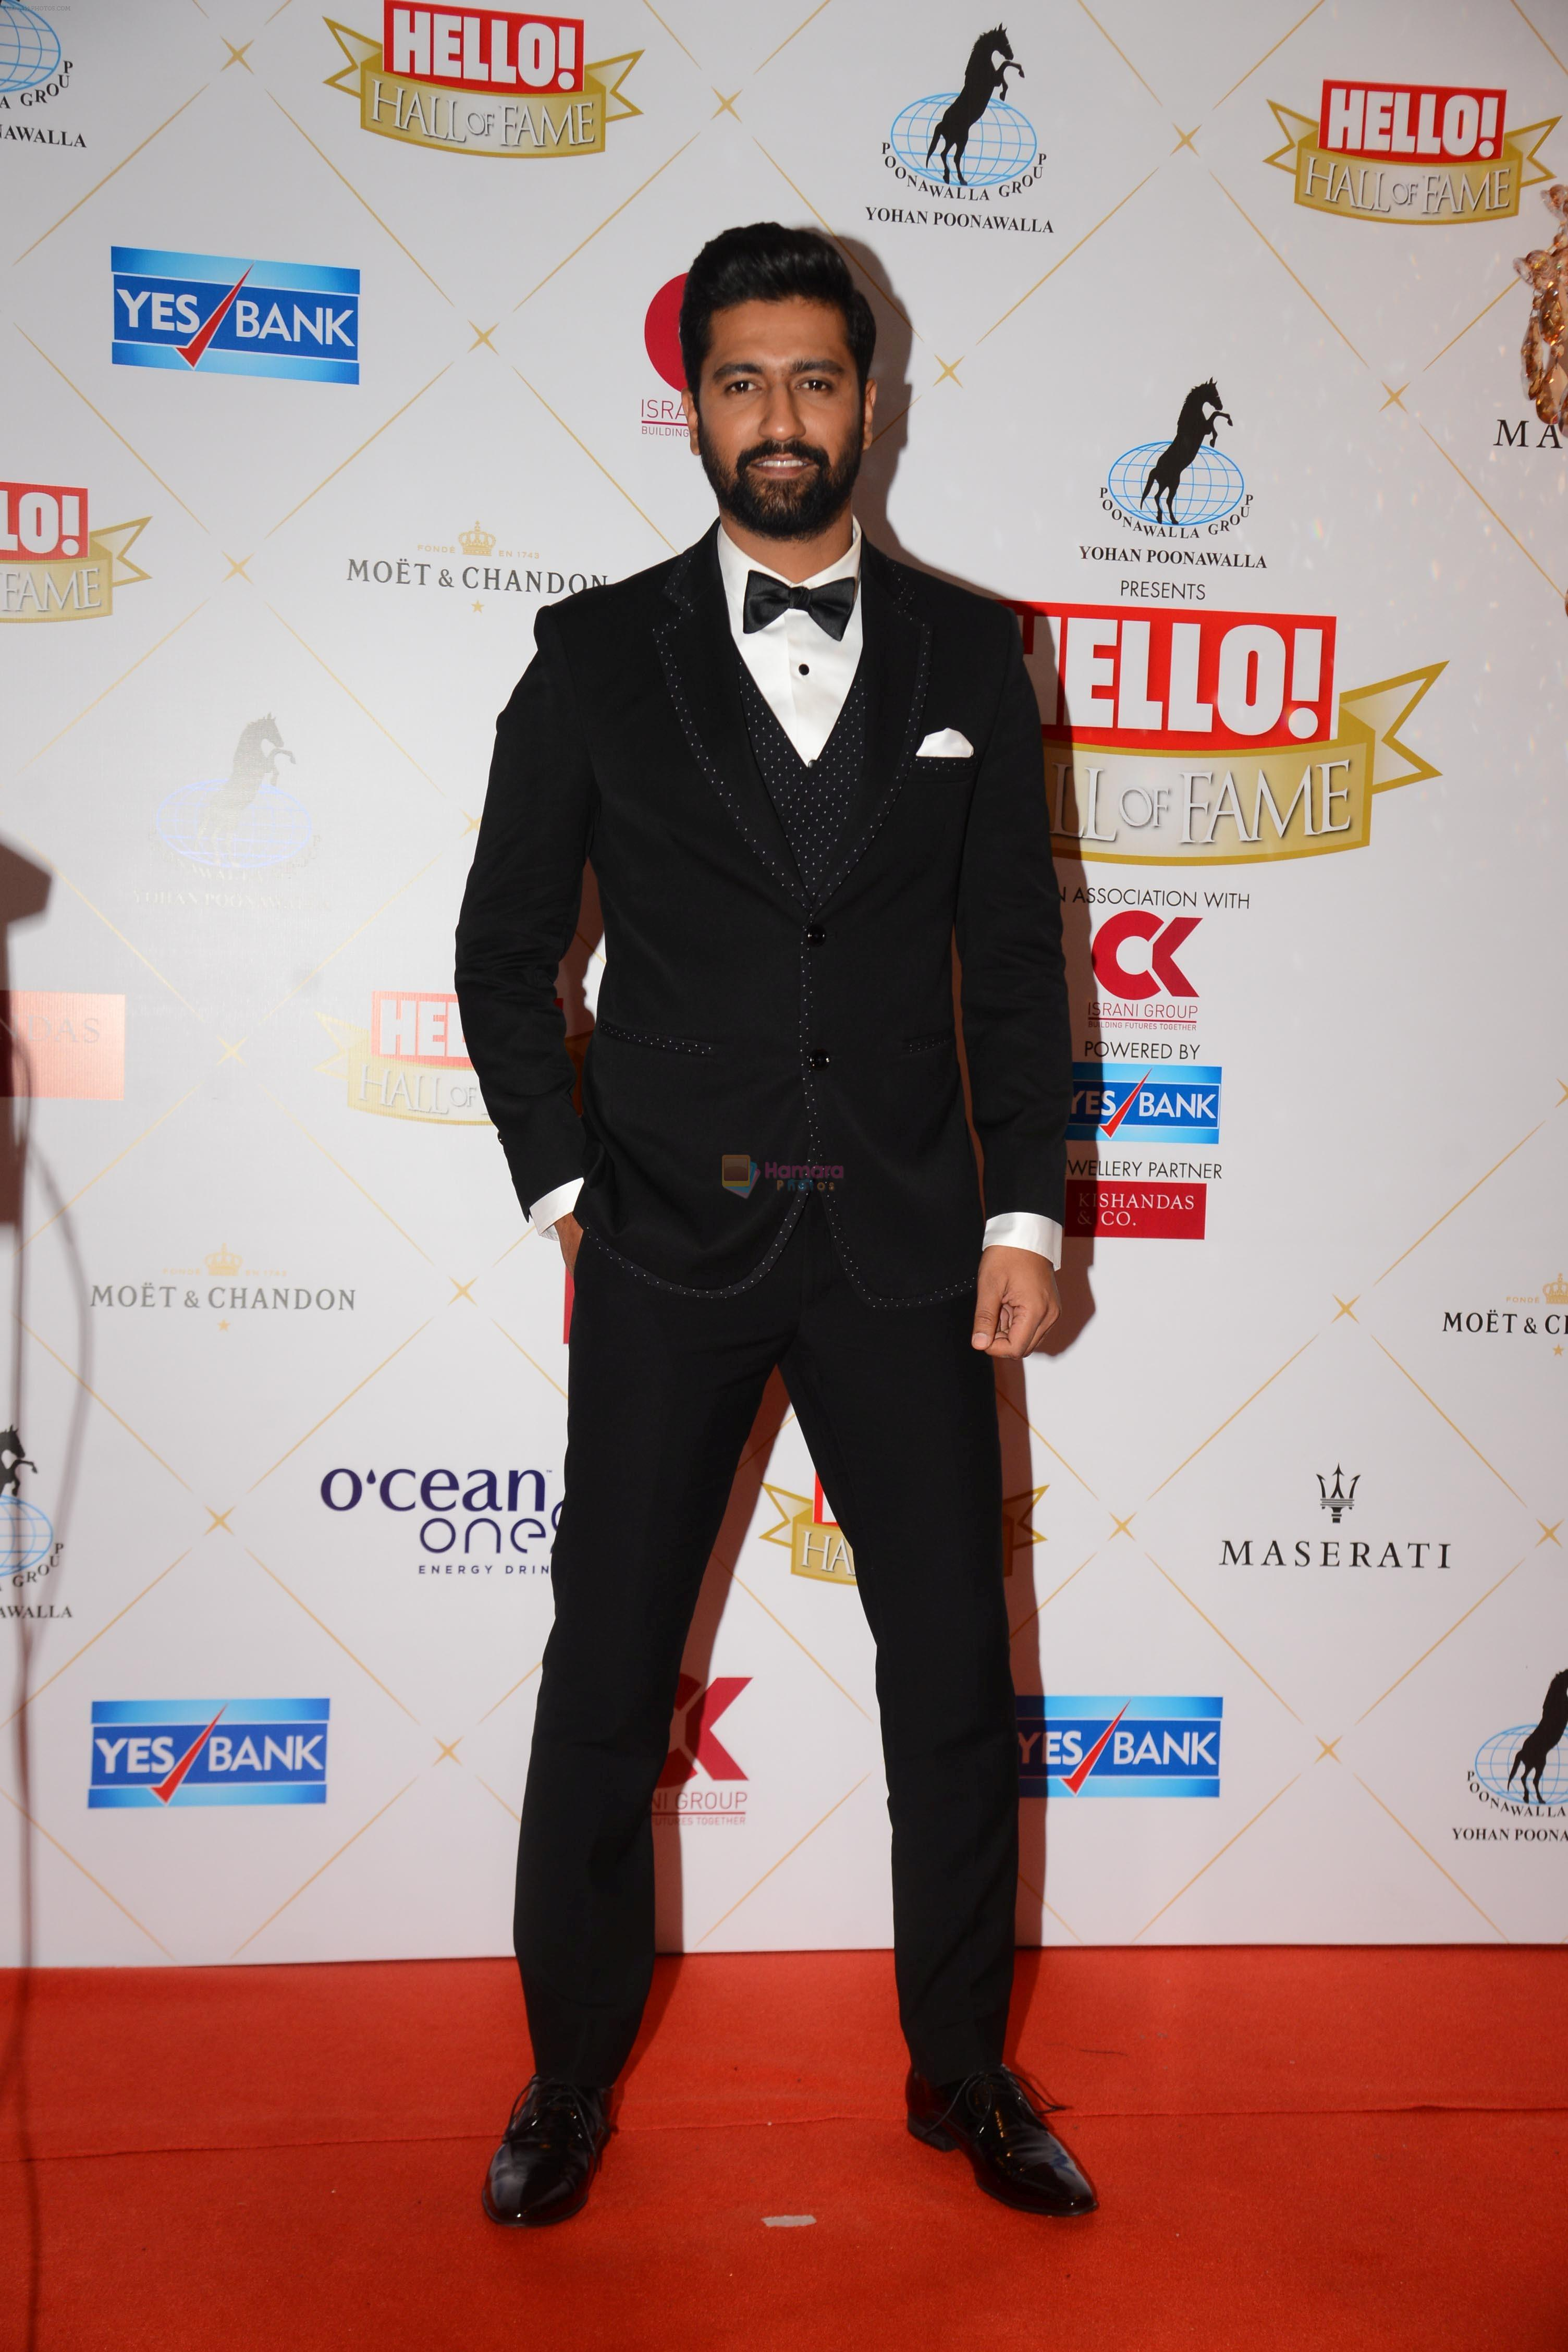 Vicky Kaushal at the Hello Hall of Fame Awards in St Regis hotel on 18th March 2019